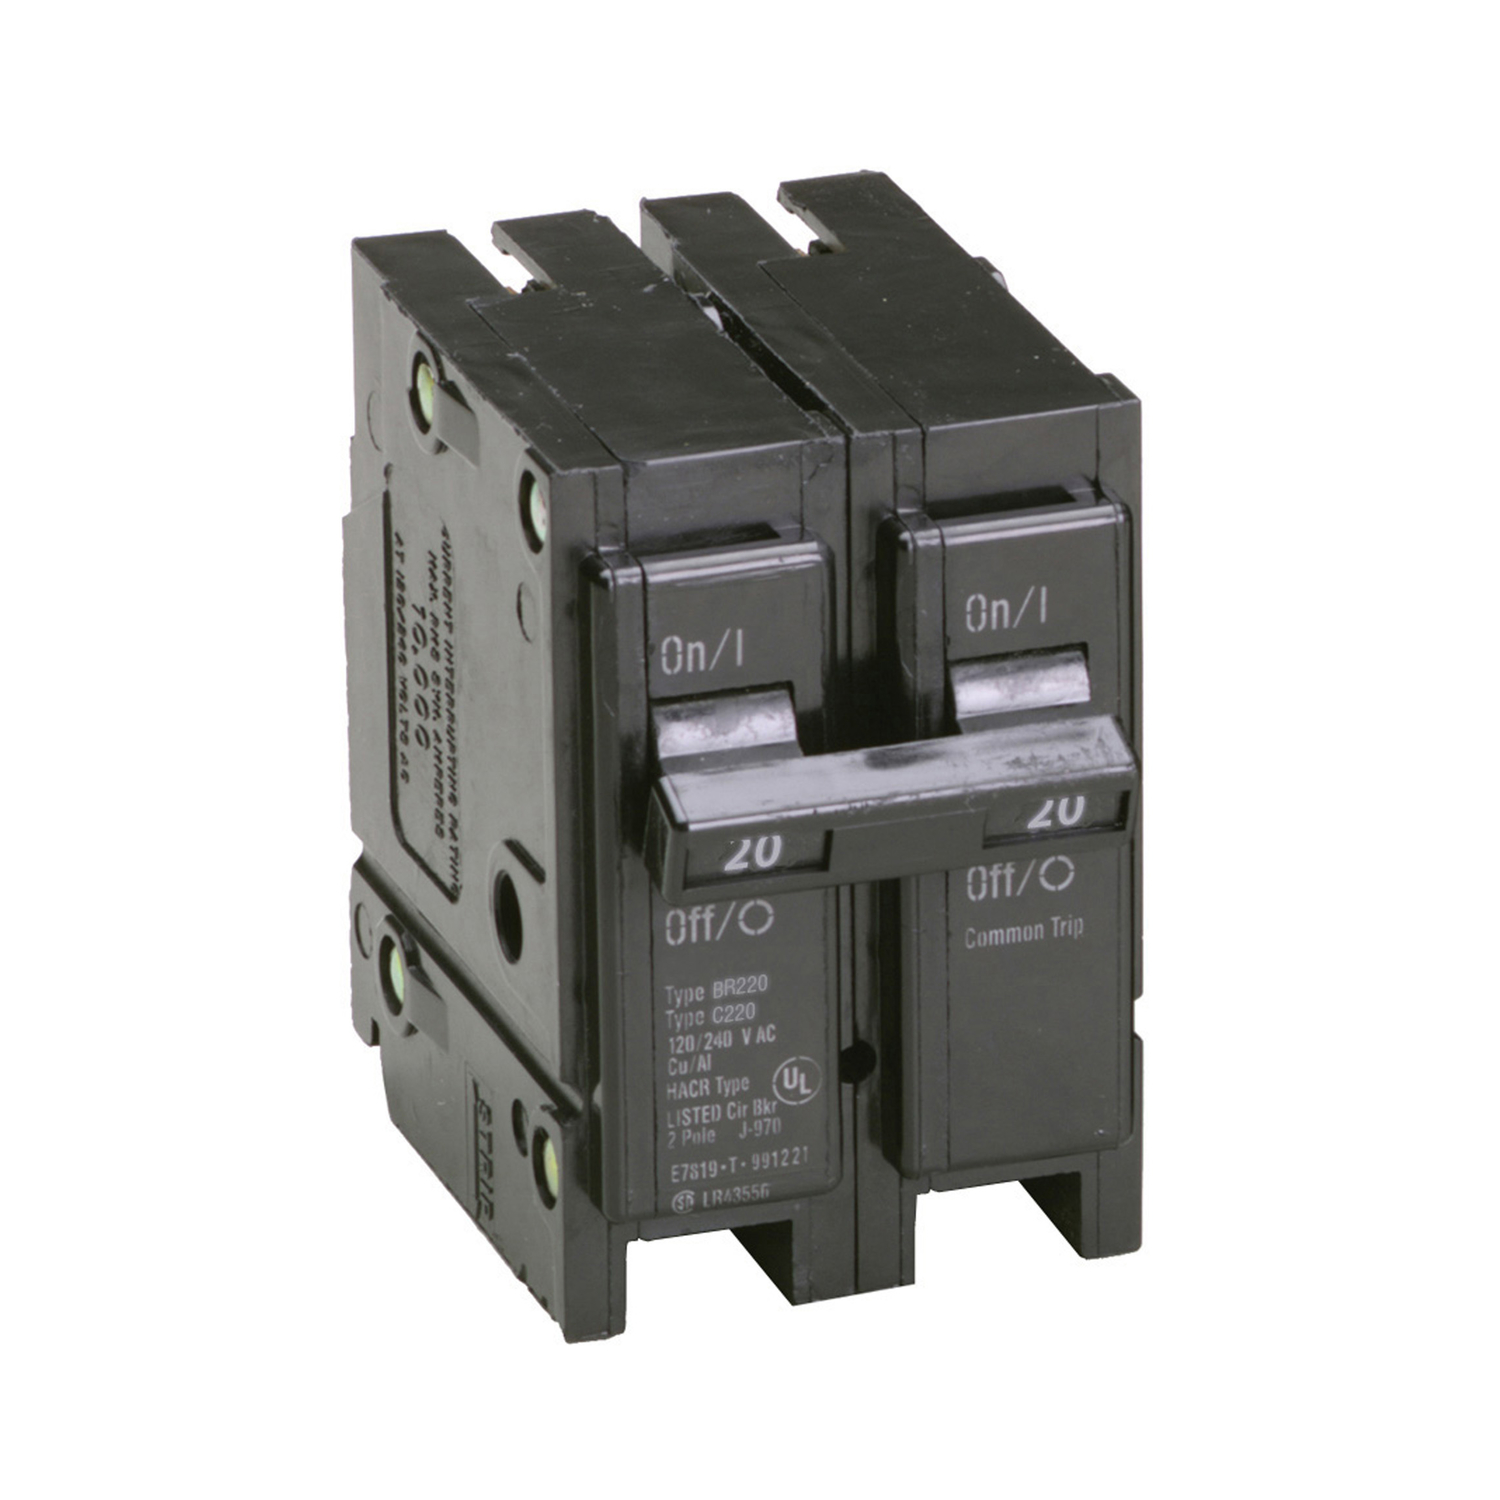 Eaton  Cutler-Hammer  20 amps Plug In  2-Pole  Circuit Breaker